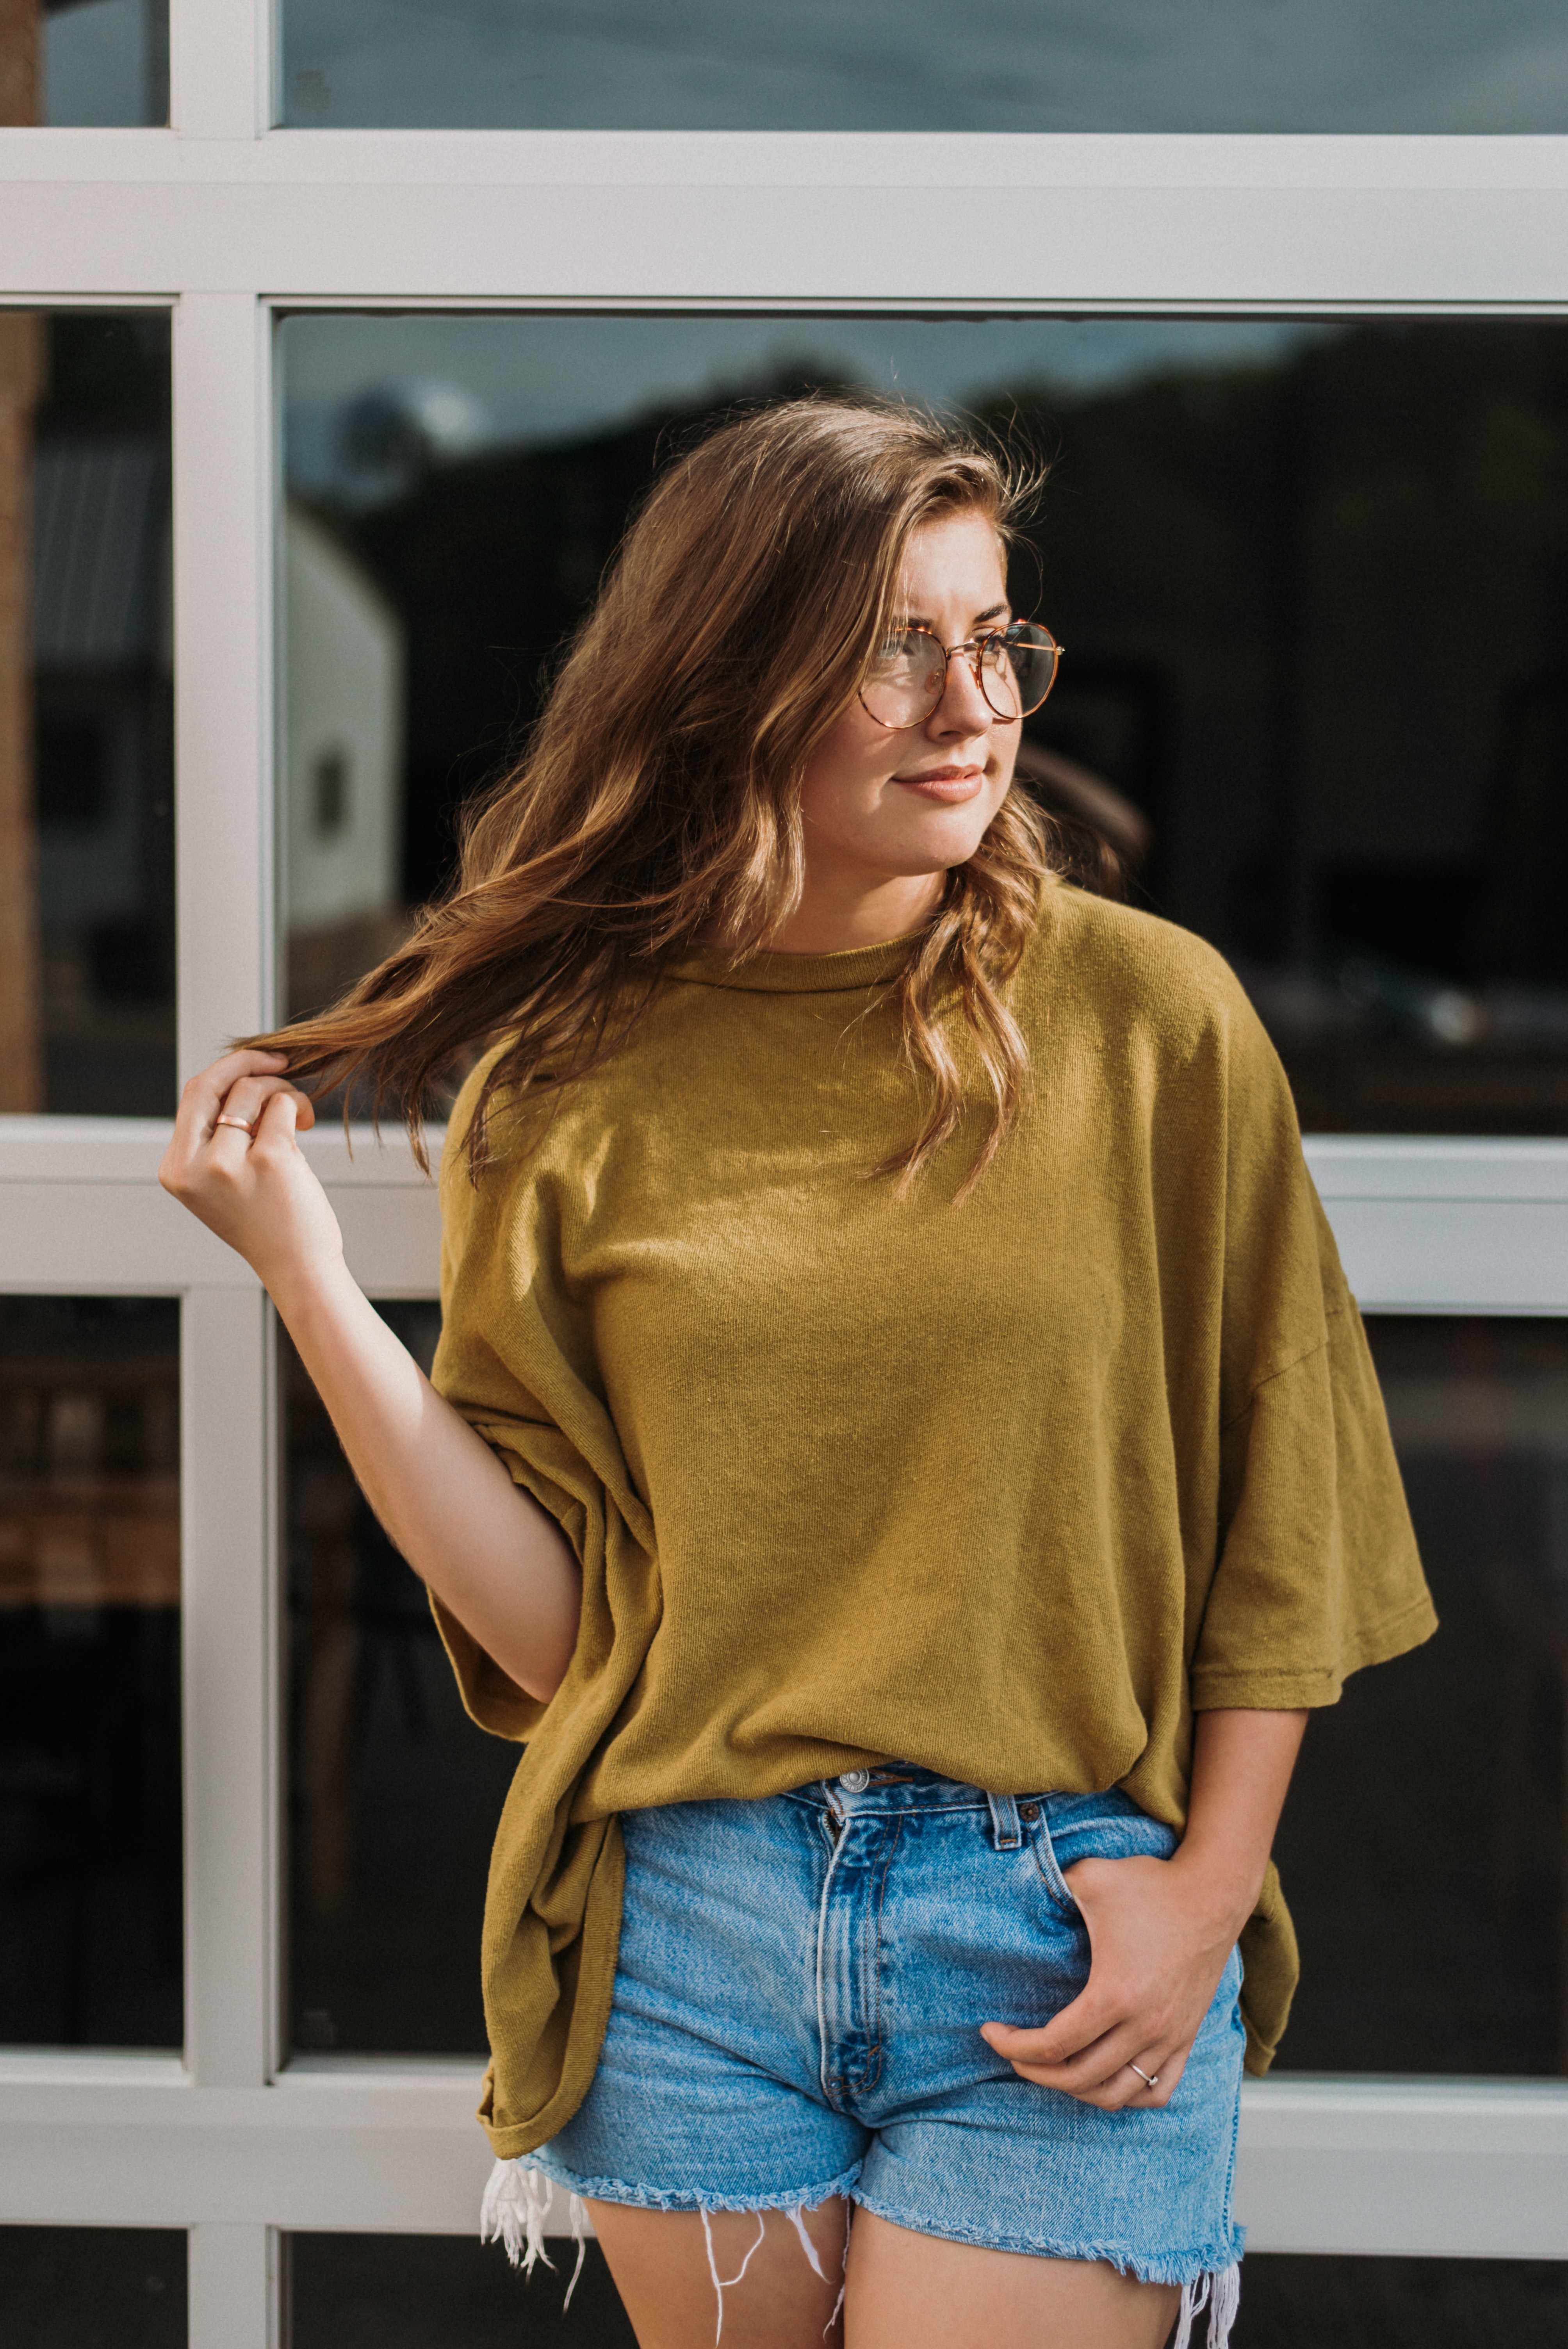 woman wearing brown crew-neck blouse standing near the glass building